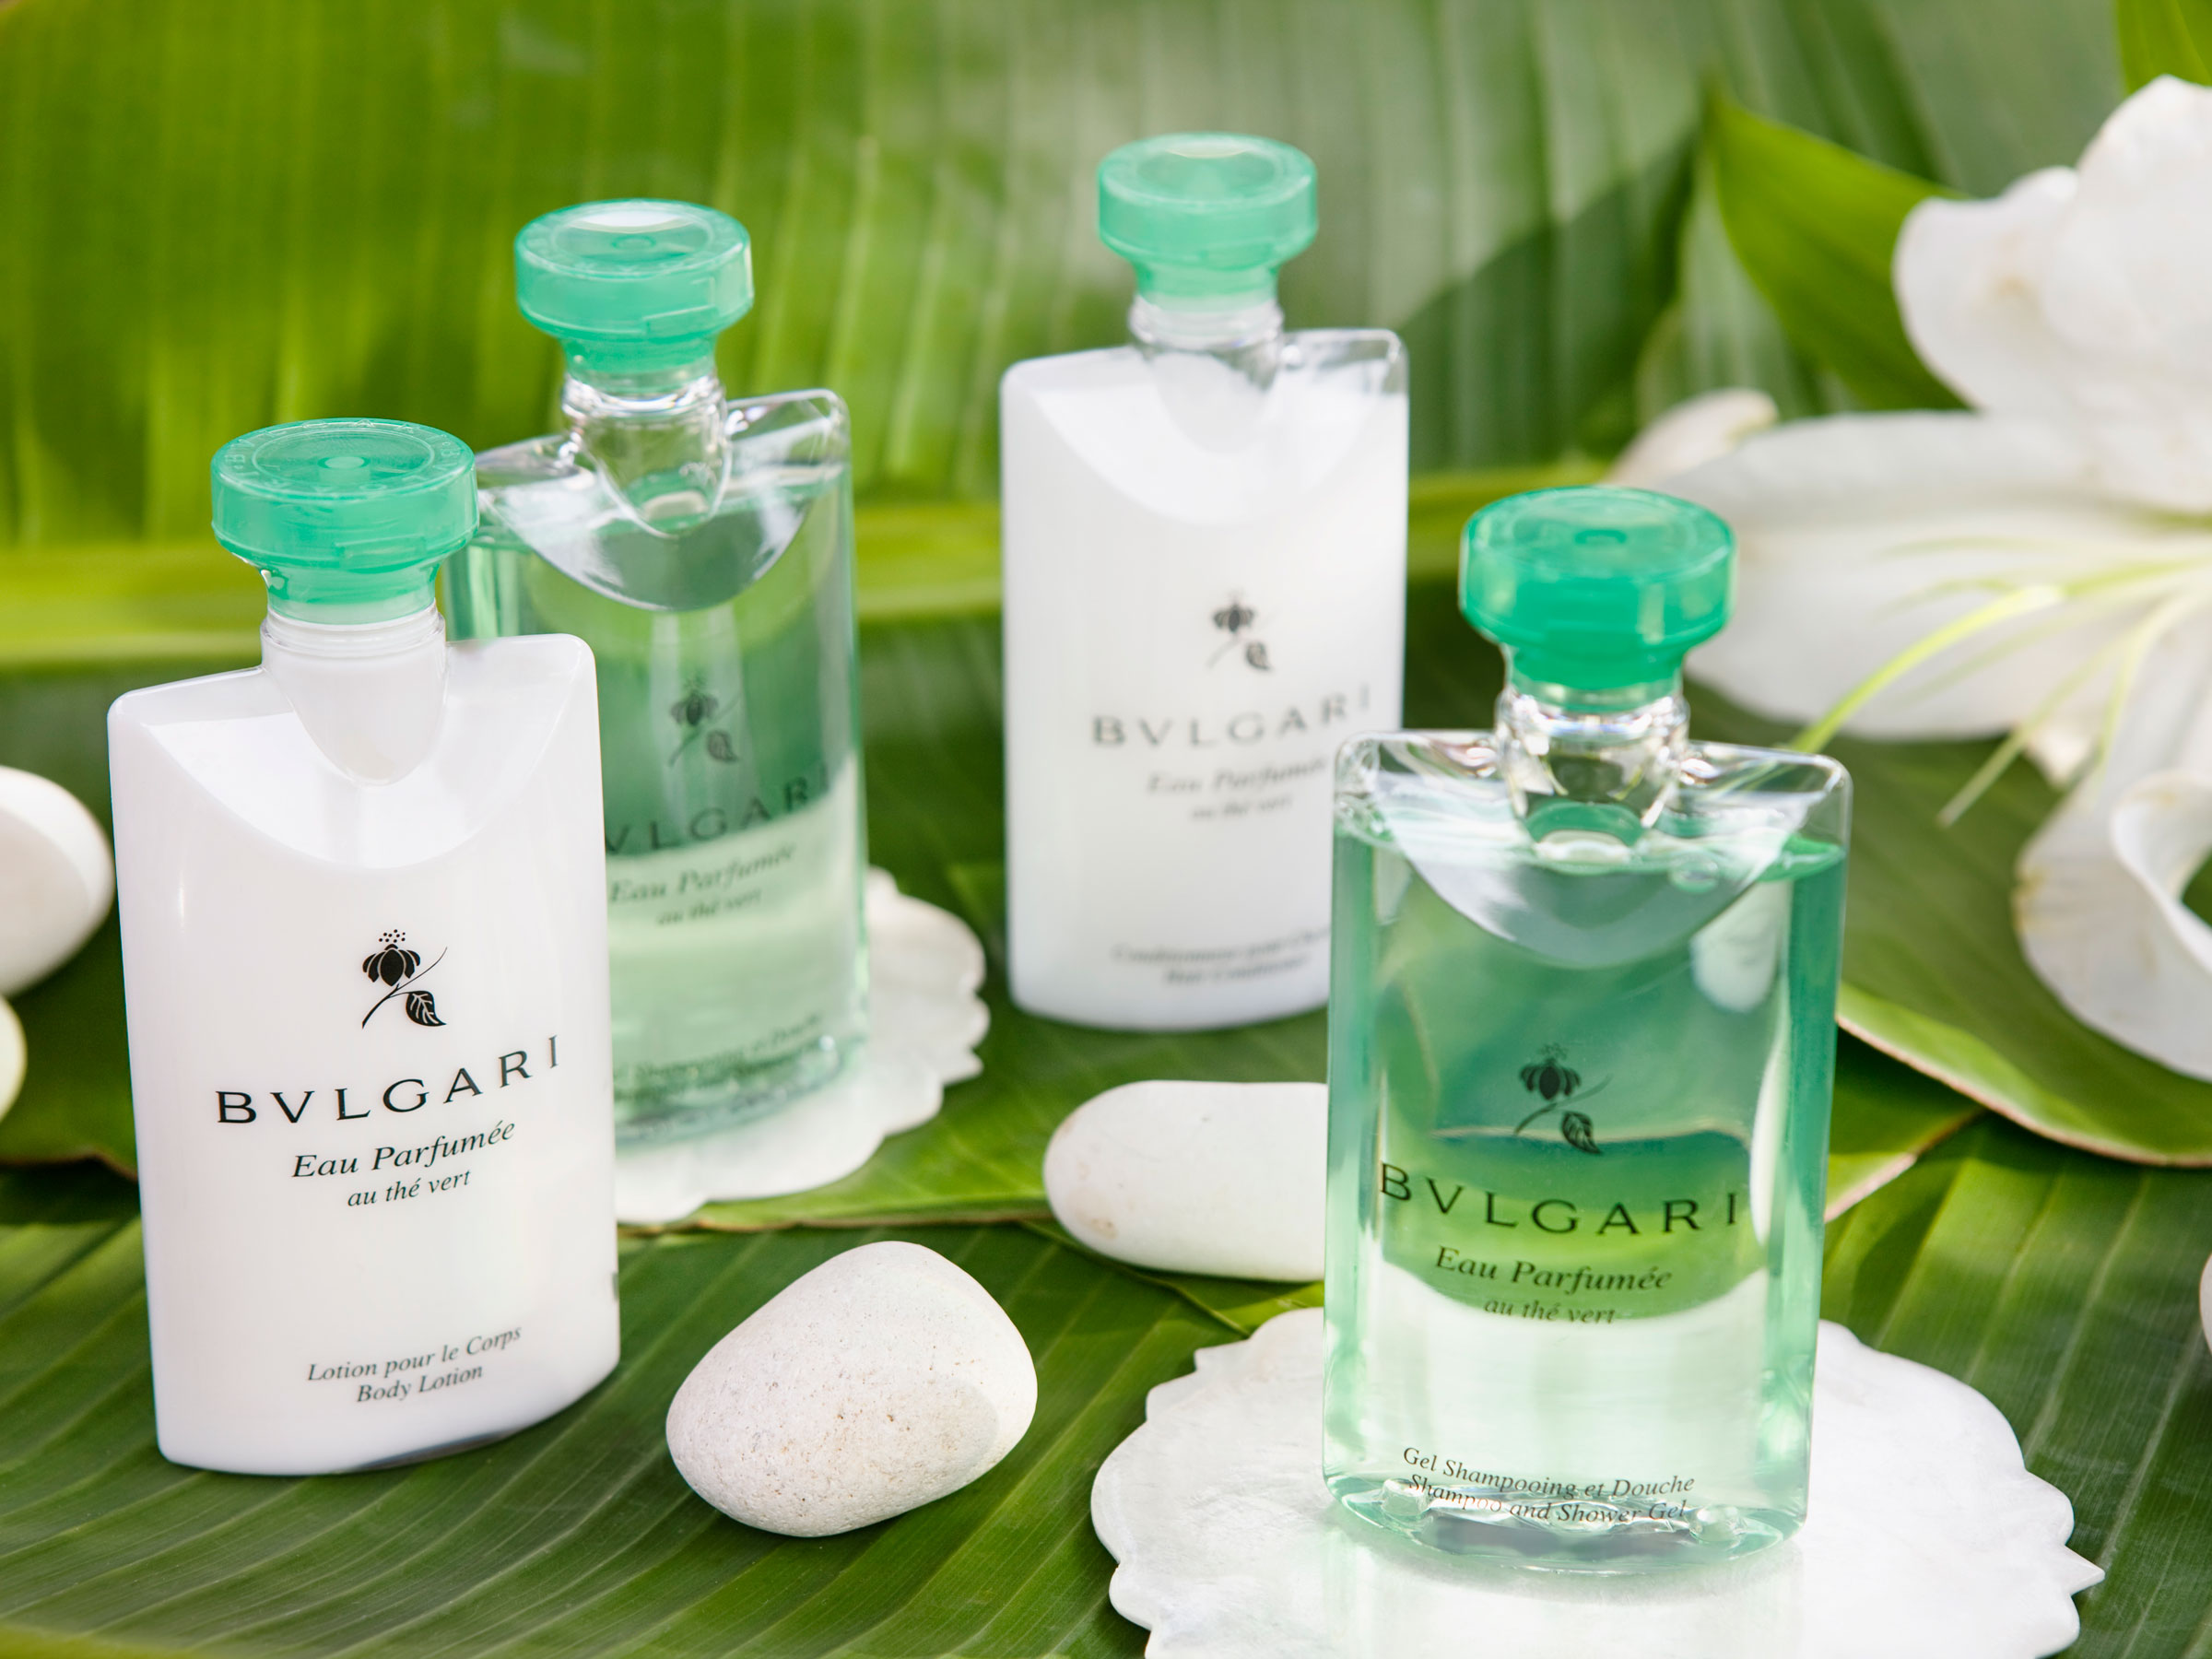 Bvlgari Bath Amenities in a Romantic Hotel Room with Jacuzzi